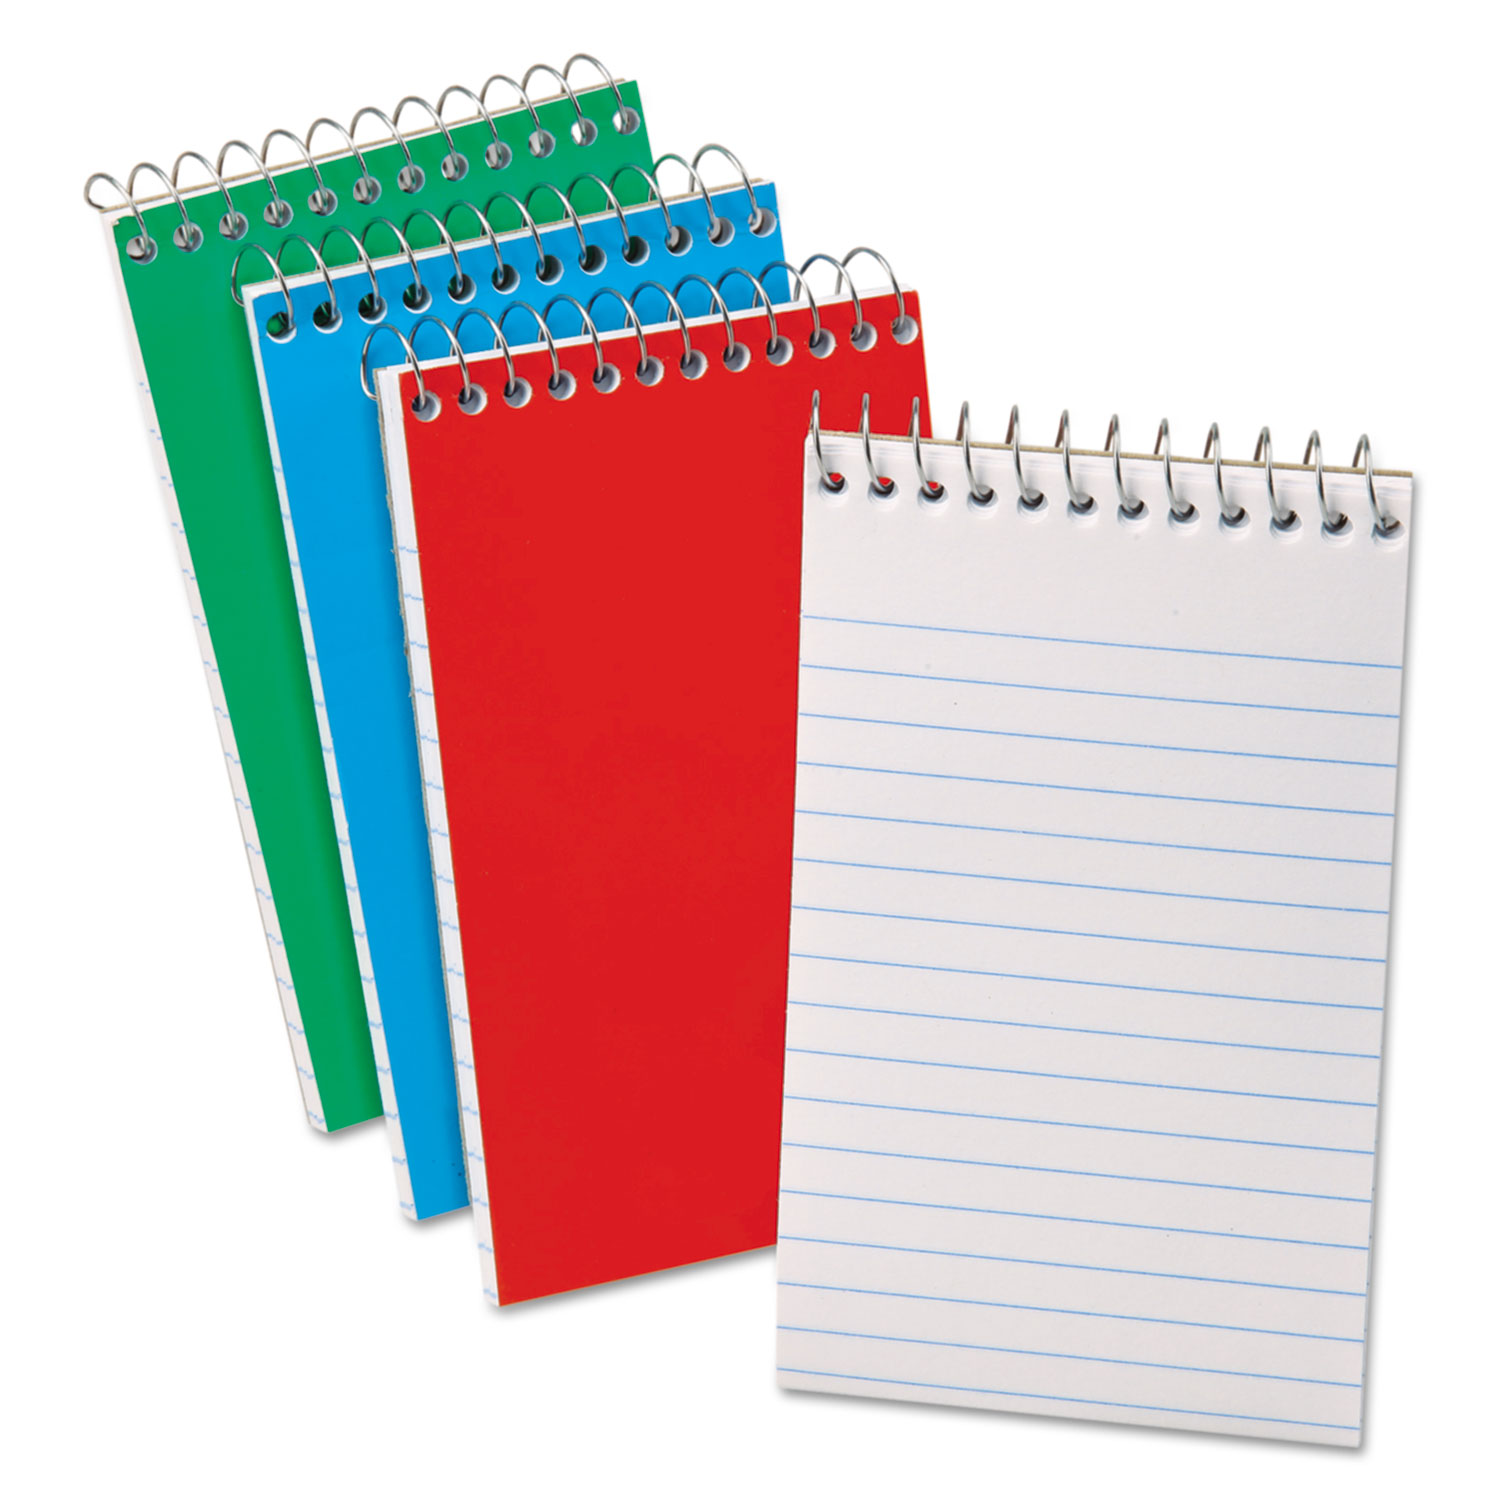 Oxford Memo Book, Pocket Sz., 15 lb., Narrow Ruled, 3/PK, Assorted - OXF45093